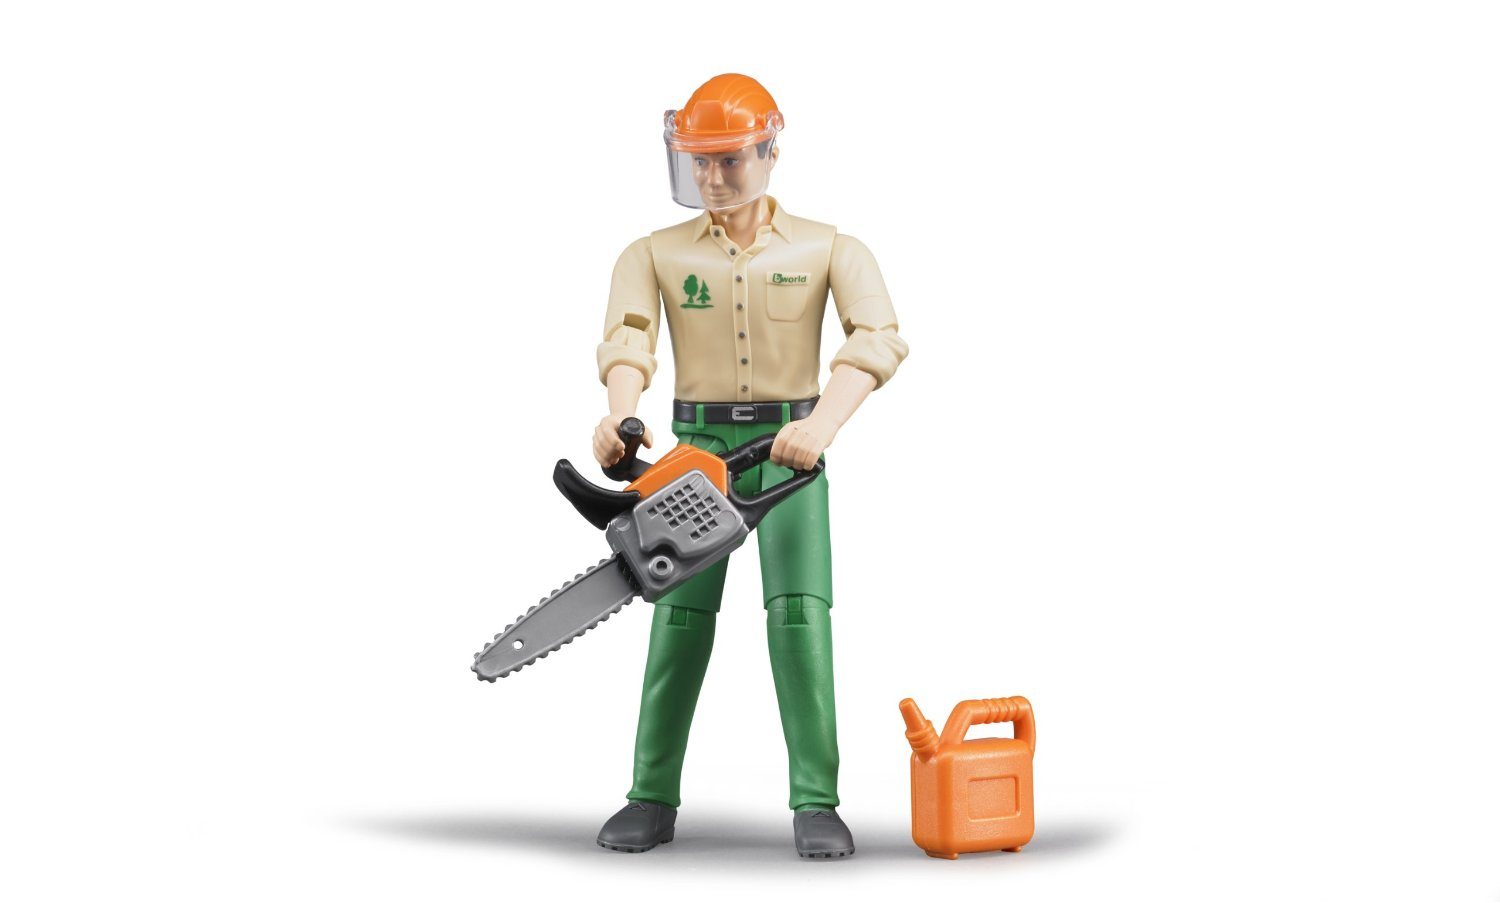 BRUDER FORESTRY WORKER WITH ACCESSORIES 116 SCALE